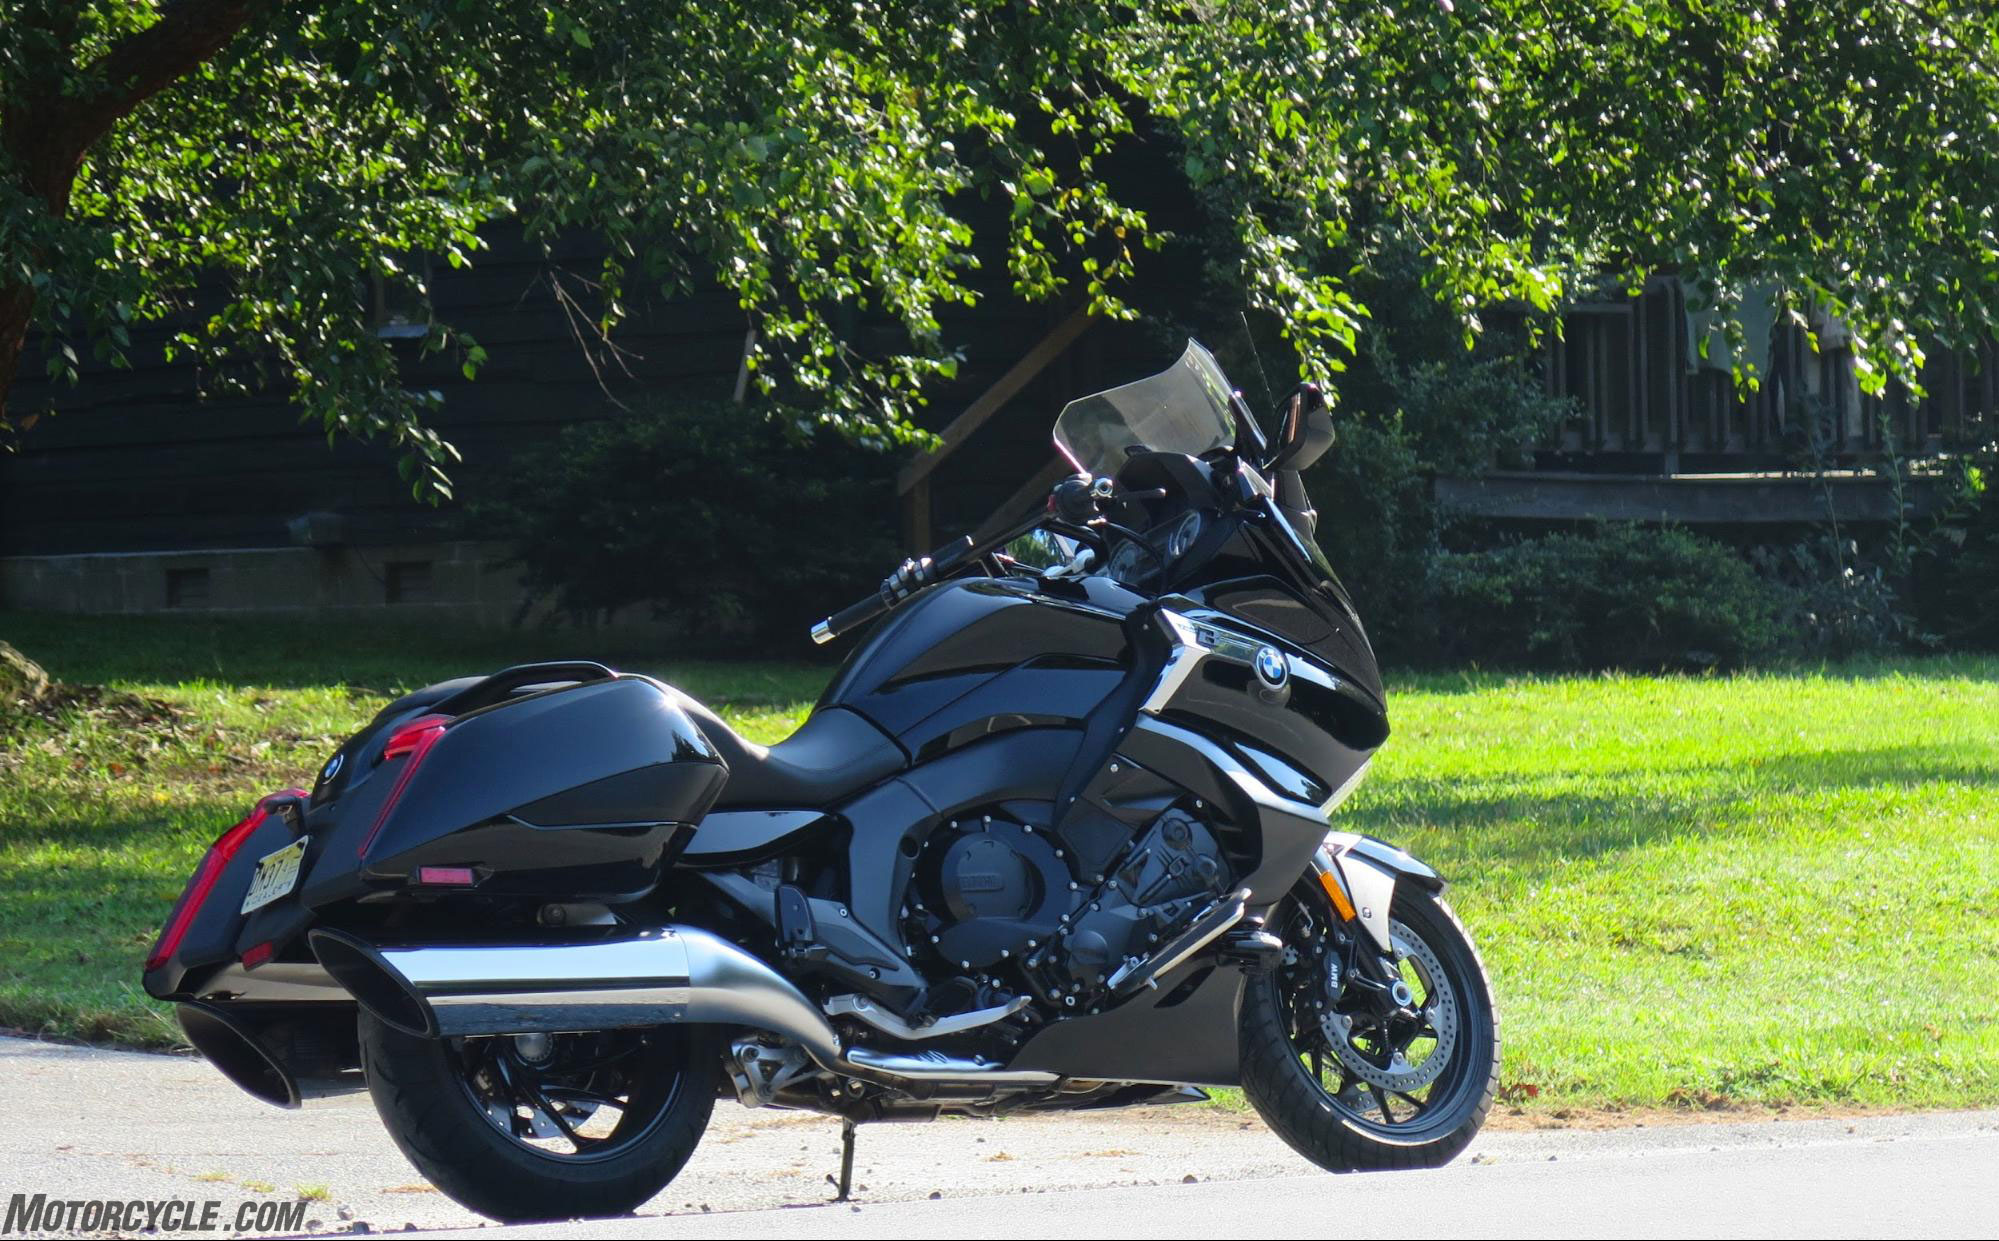 2018 BMW K1600B Review - First Ride - Motorcycle com